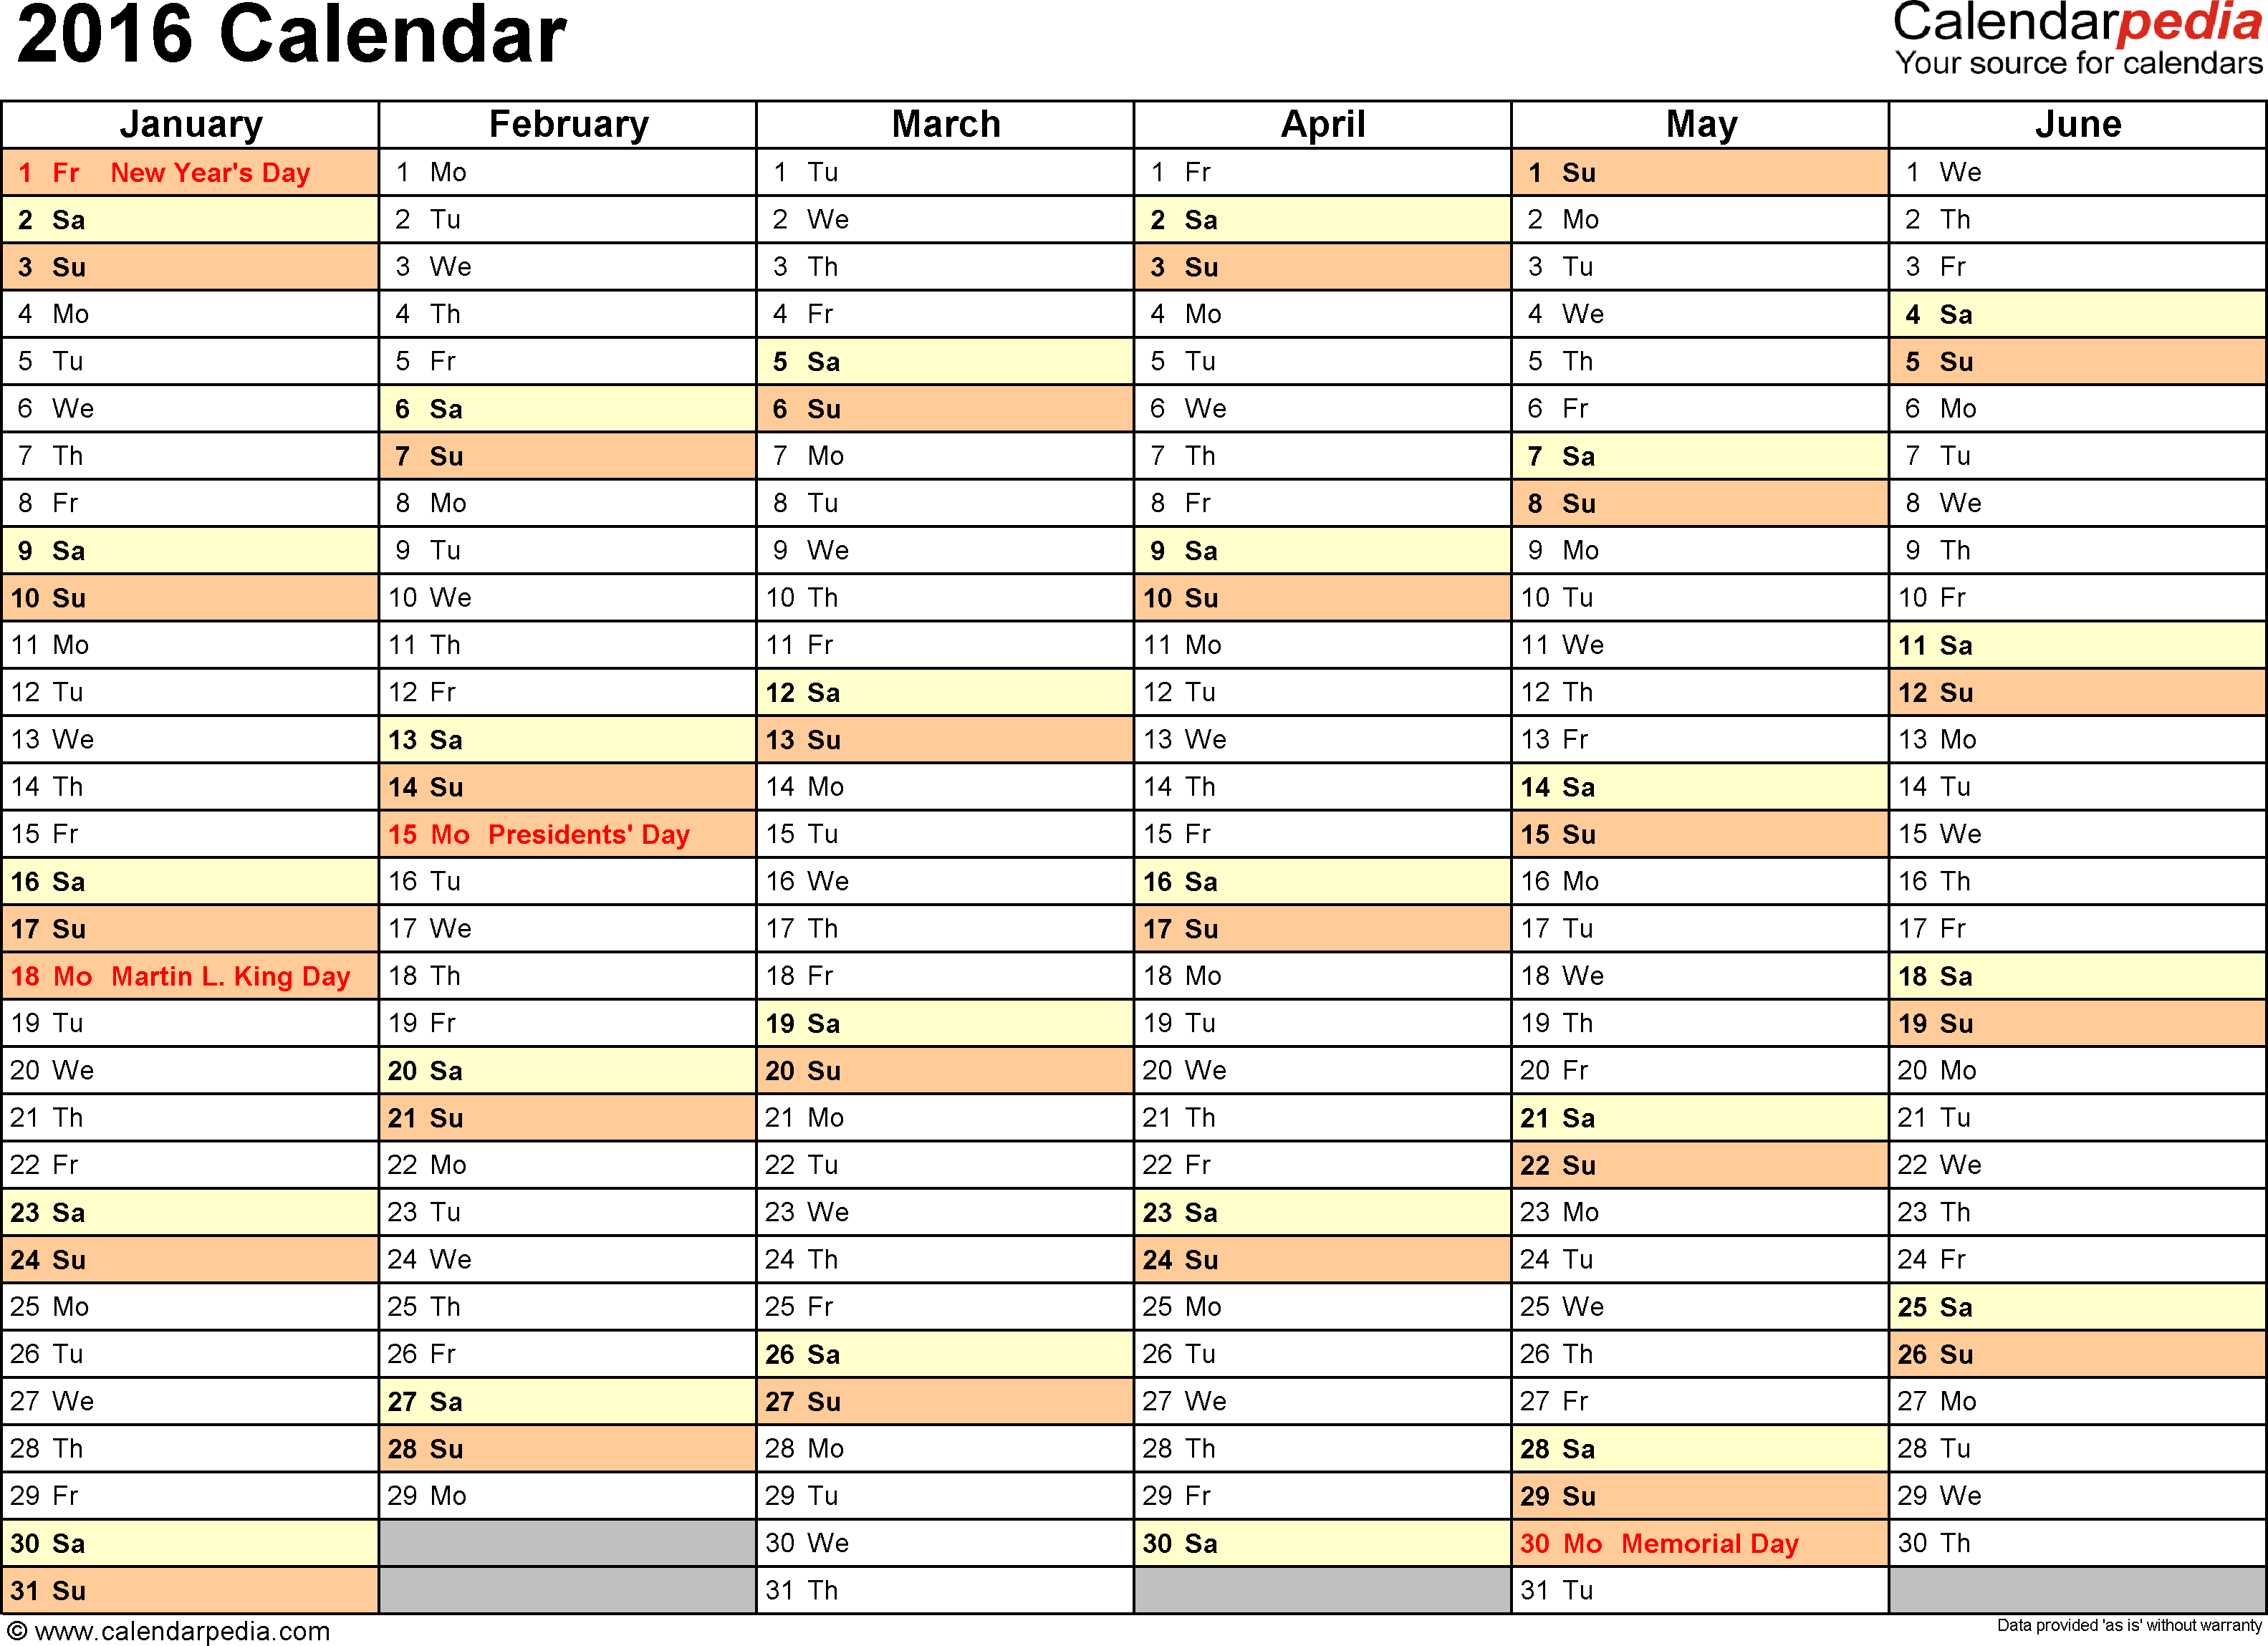 Ediblewildsus  Sweet  Calendar  Download  Free Printable Excel Templates Xls With Heavenly Template   Calendar For Excel Months Horizontally  Pages Landscape Orientation With Agreeable Excel Accessing Printer Also Convert Txt To Excel In Addition How To Unlock An Excel Spreadsheet And Excel Logical Test As Well As How Do You Hide A Column In Excel Additionally Enter In Excel From Calendarpediacom With Ediblewildsus  Heavenly  Calendar  Download  Free Printable Excel Templates Xls With Agreeable Template   Calendar For Excel Months Horizontally  Pages Landscape Orientation And Sweet Excel Accessing Printer Also Convert Txt To Excel In Addition How To Unlock An Excel Spreadsheet From Calendarpediacom